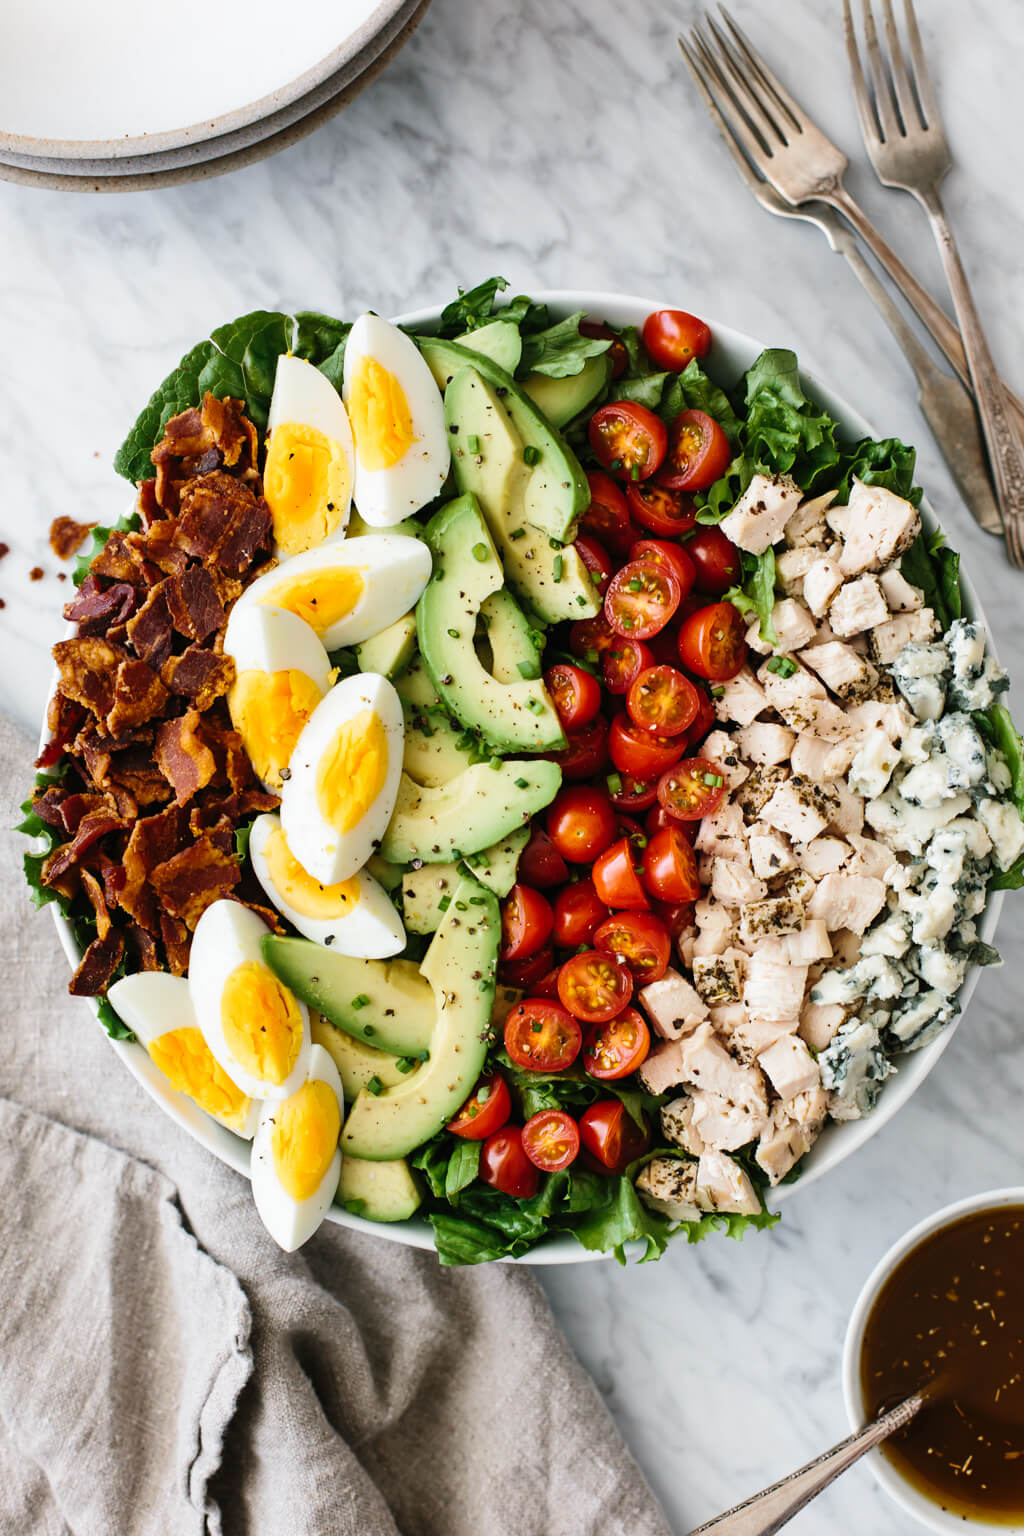 Cobb salad with bacon, hard boiled eggs, avocado, tomatoes, diced chicken and blue cheese in a bowl on a marble counter.